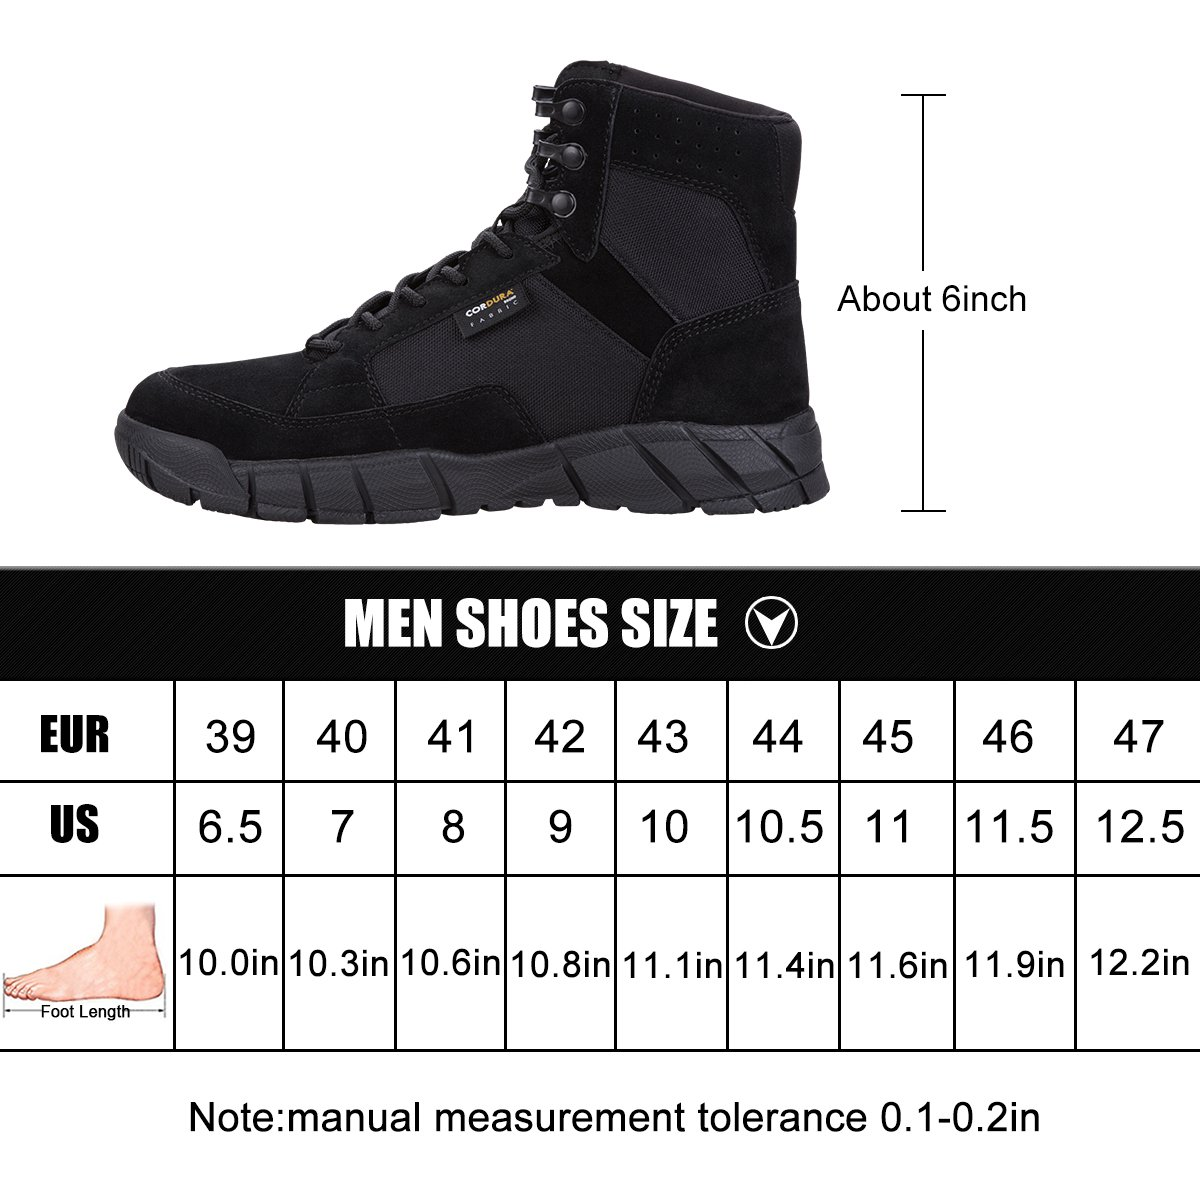 Men's Tactical Boots 6'' inch Lightweight Military Boots for Hiking Work Boots Breathable Desert Boots (Black, 8) by FREE SOLDIER (Image #7)